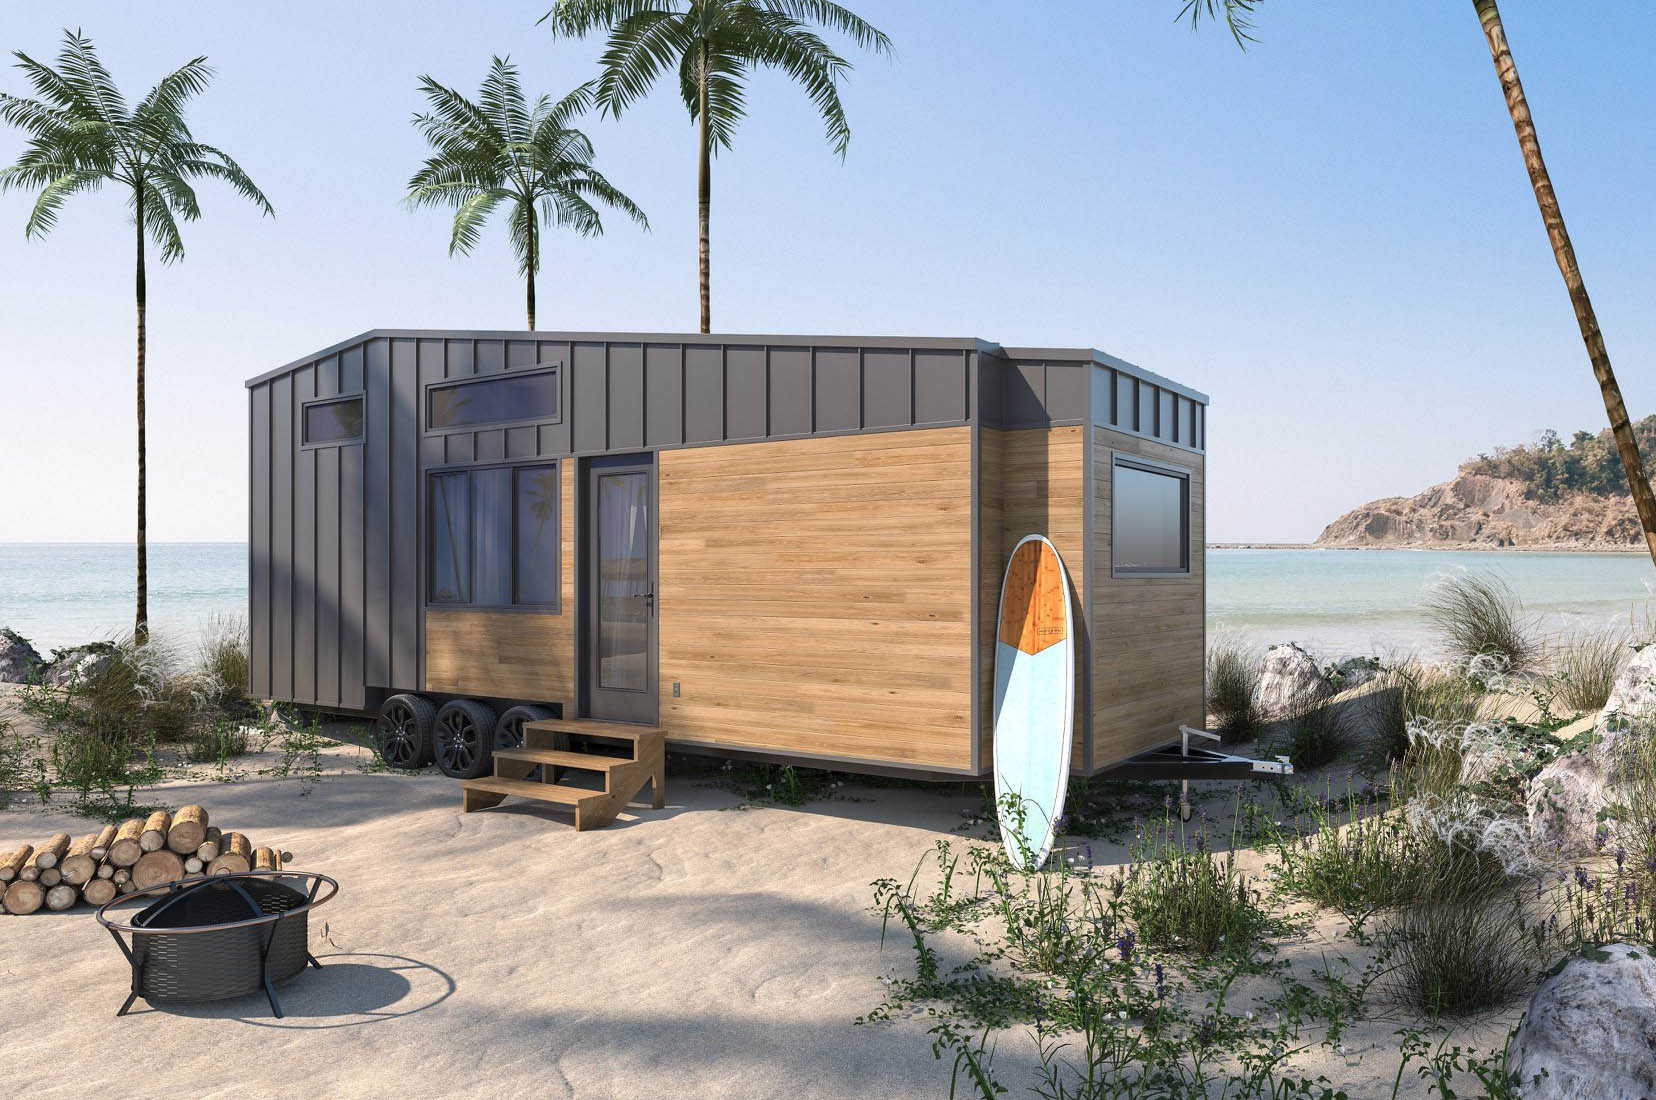 Tiny House Conference Worldwide Designs And Community Housing Solutions Archiexpo E Magazine